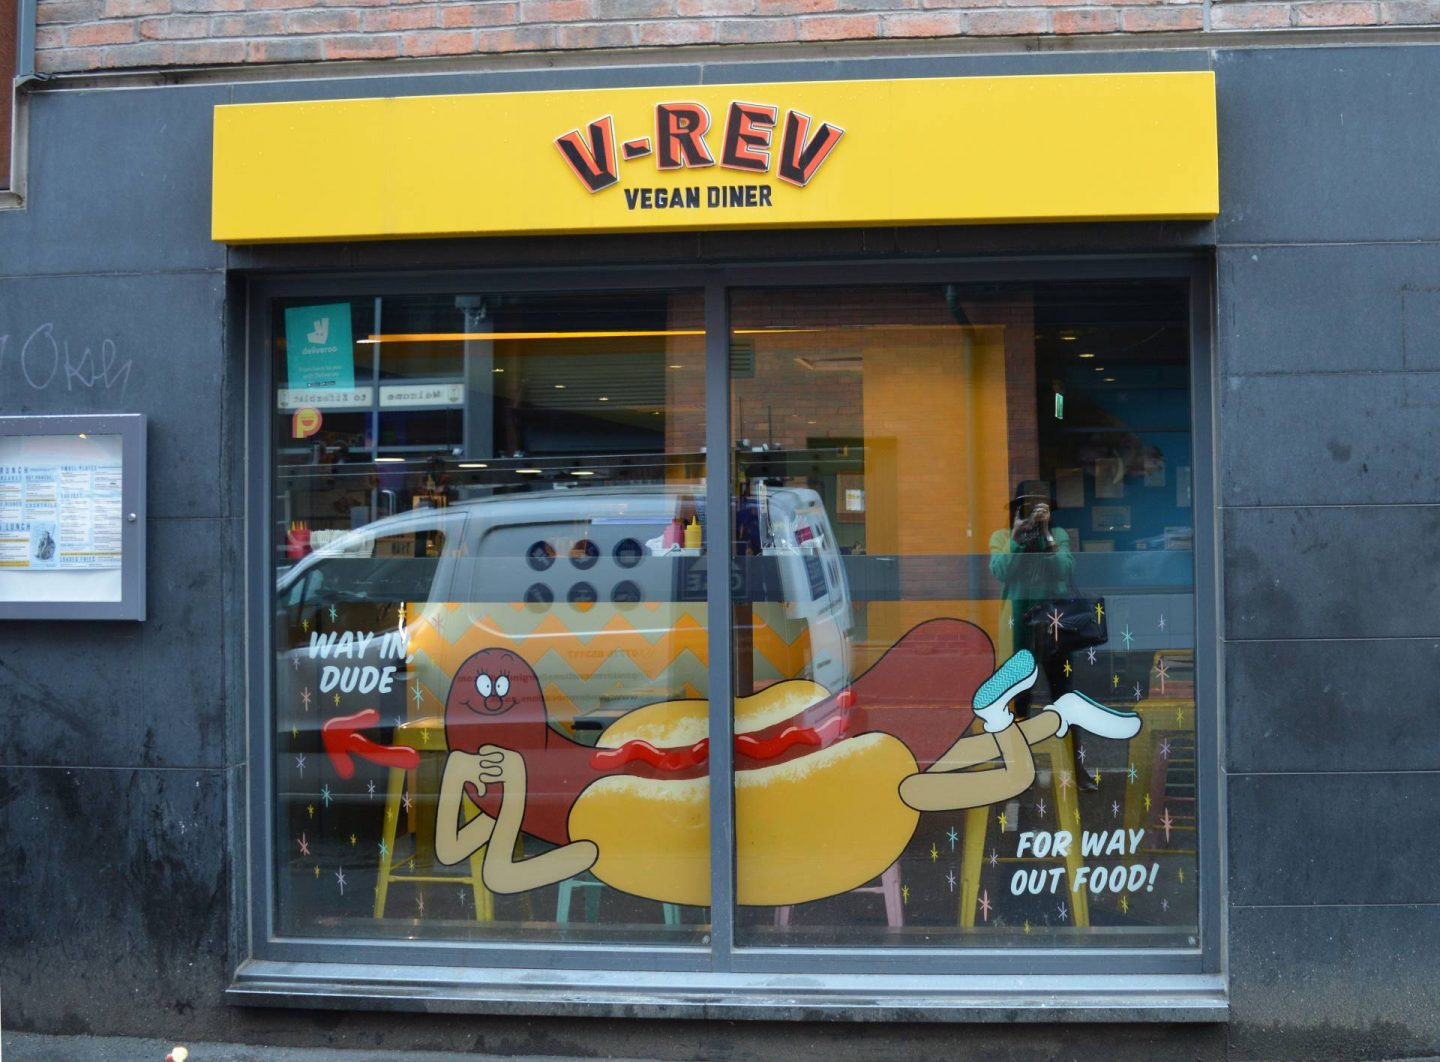 Exploring Manchester's Northern Quarter, V-Rev vegan diner